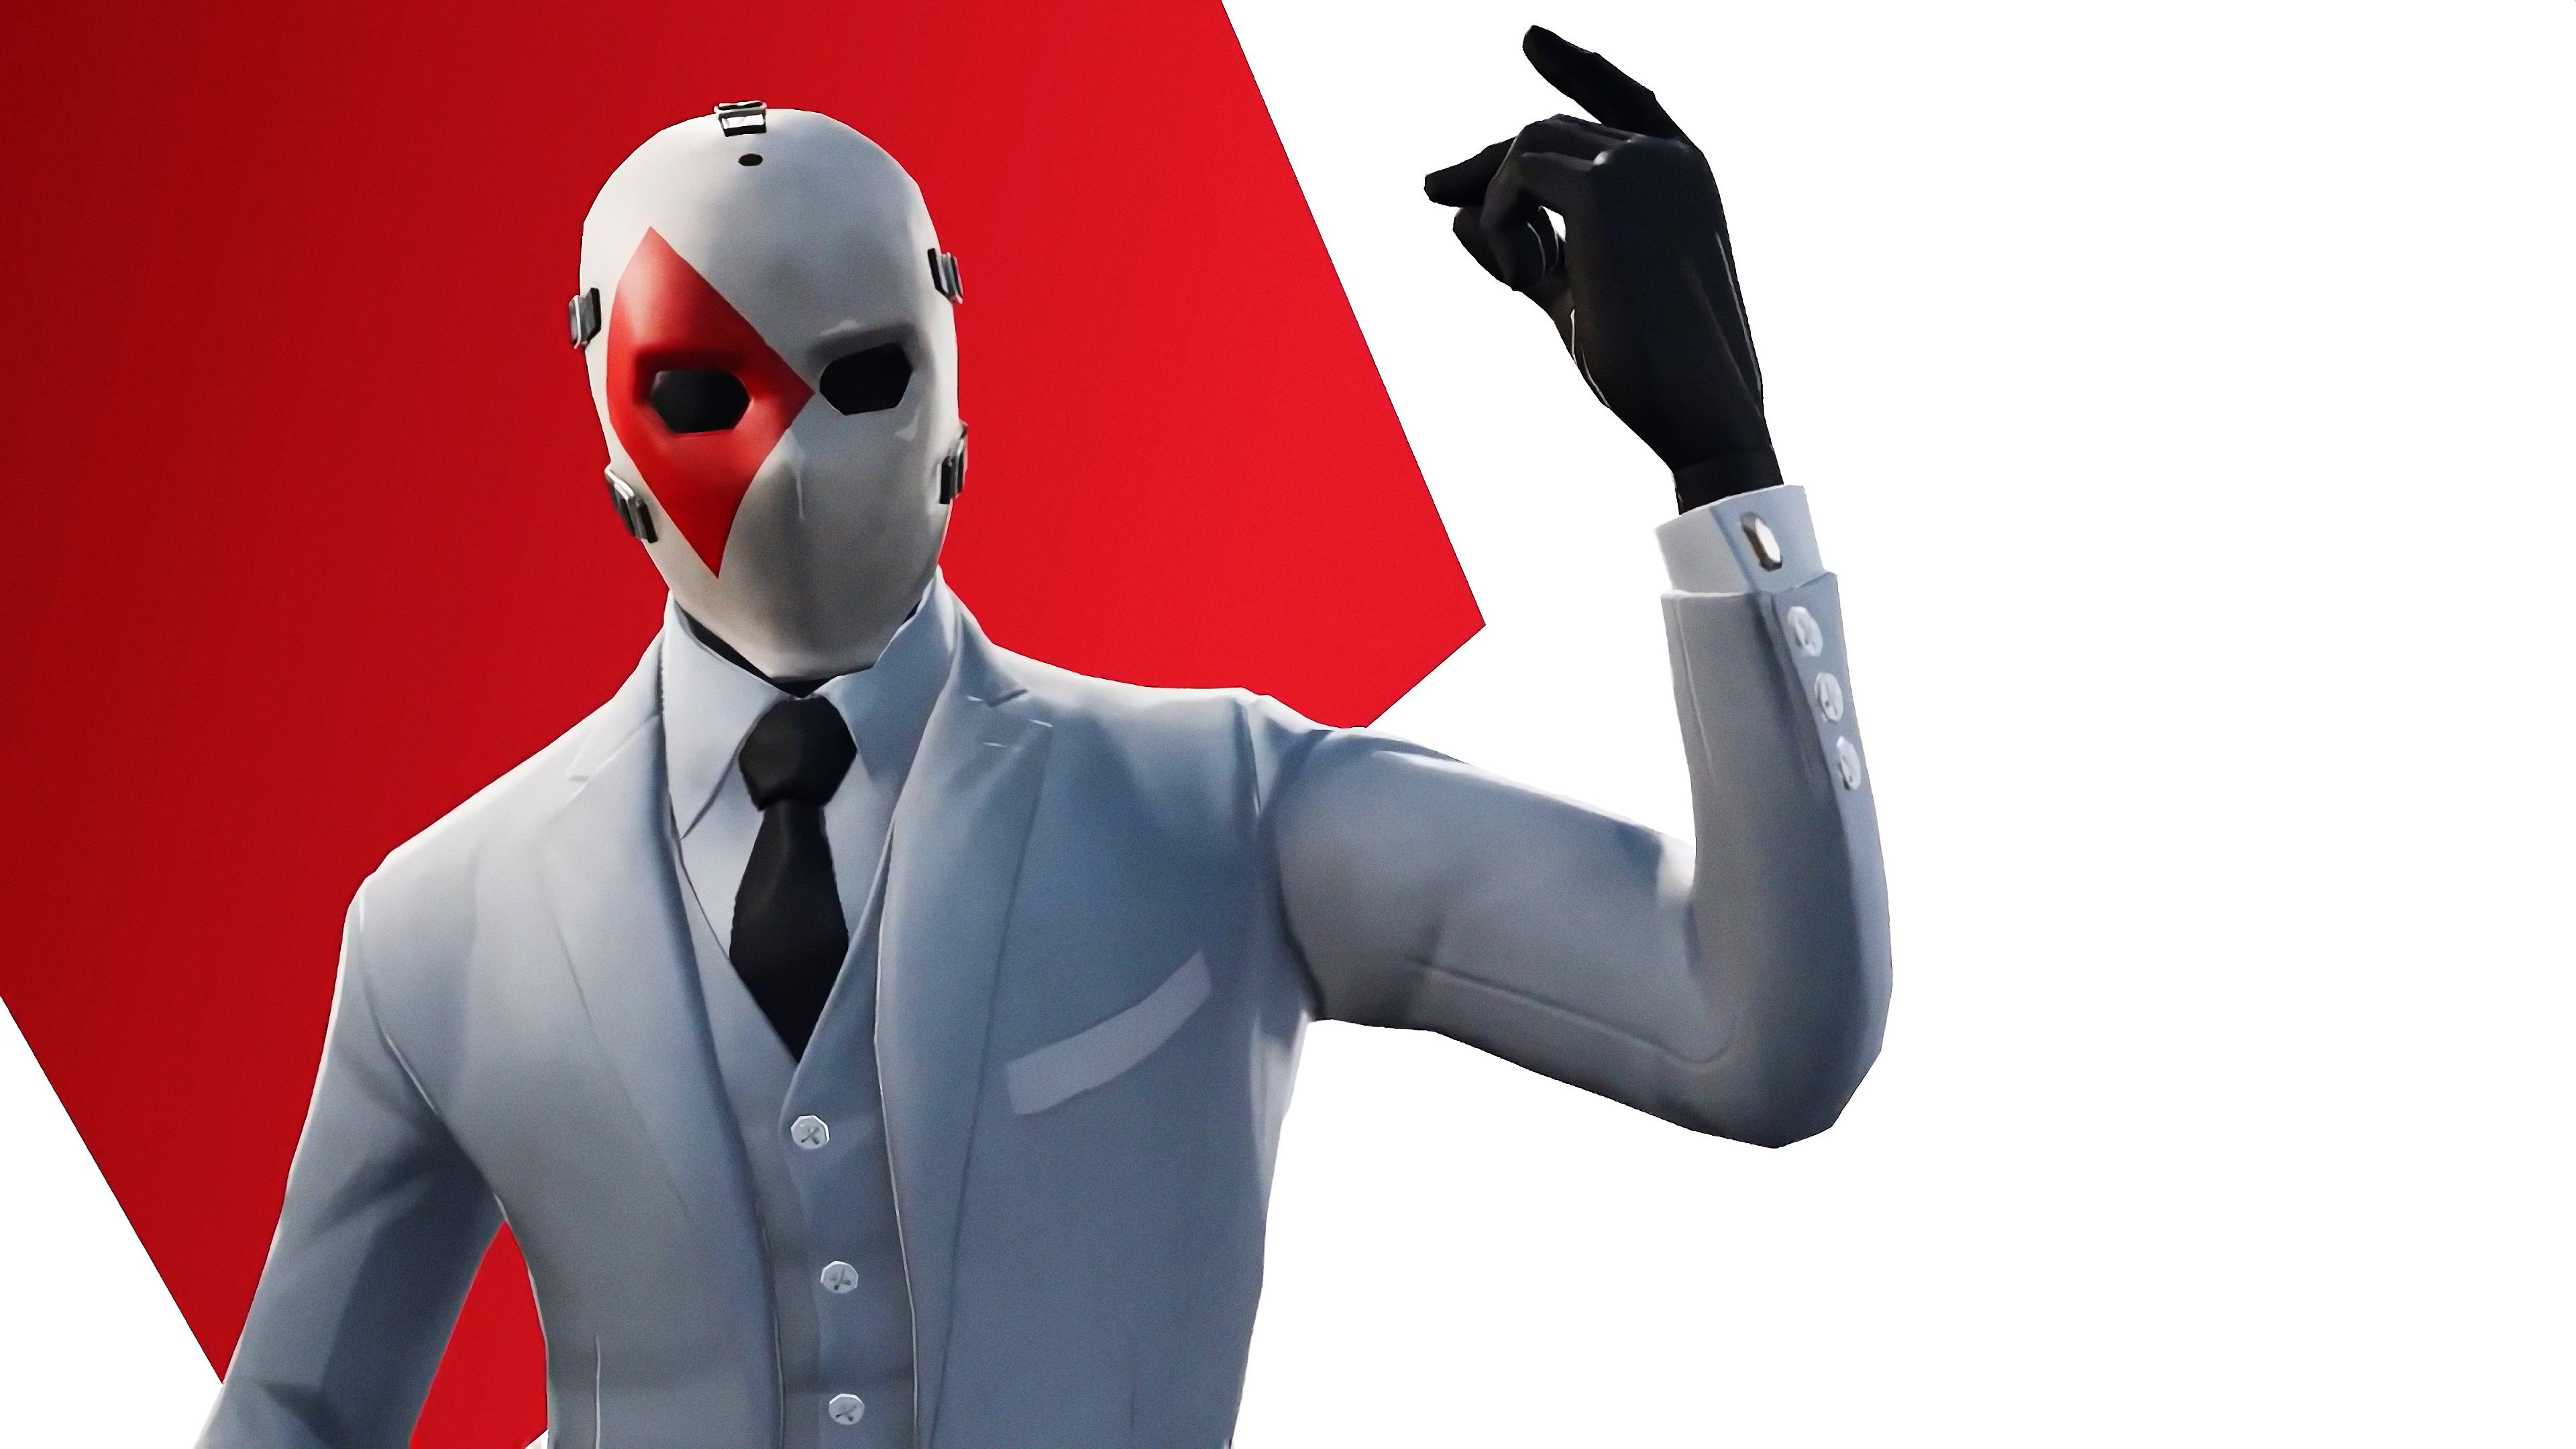 Wild Card Ace Of Diamonds 4k Wallpapers Fortnite Battle Royale Ps Games Wallpapers Hd Wallpapers Games Wallpapers Fortnit Ace Of Diamonds Wild Card Fortnite